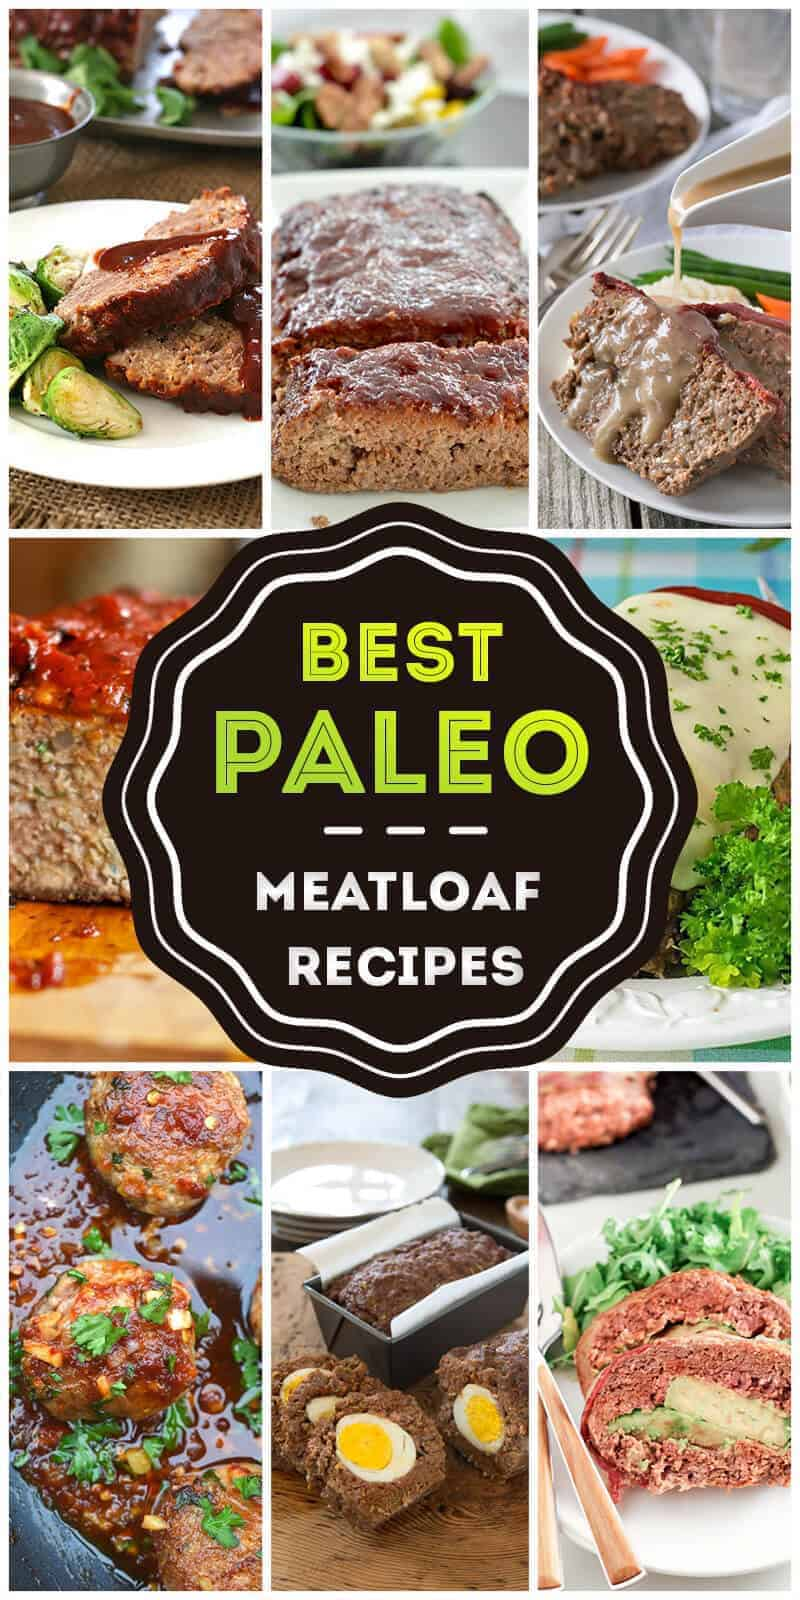 Best Paleo Meatloaf Ideas